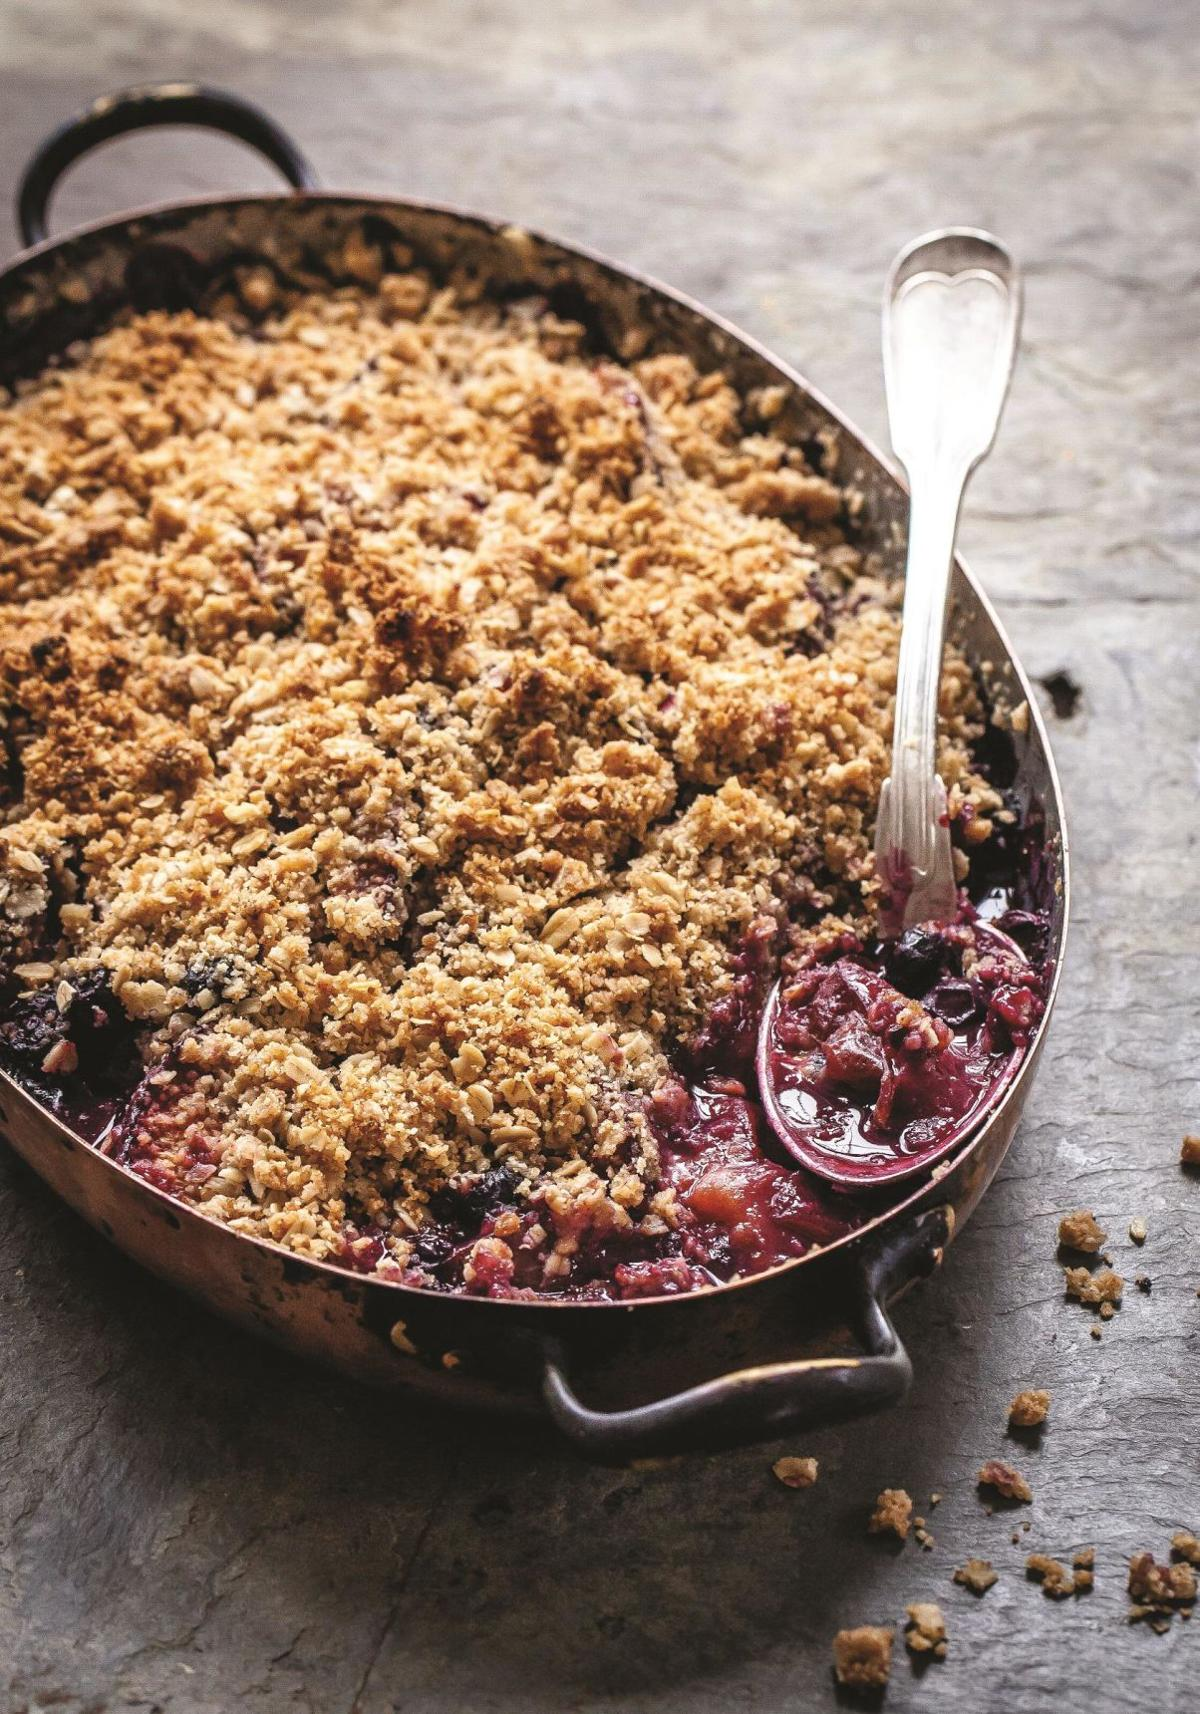 In sweet or savory dishes, or just as a snack, blueberries